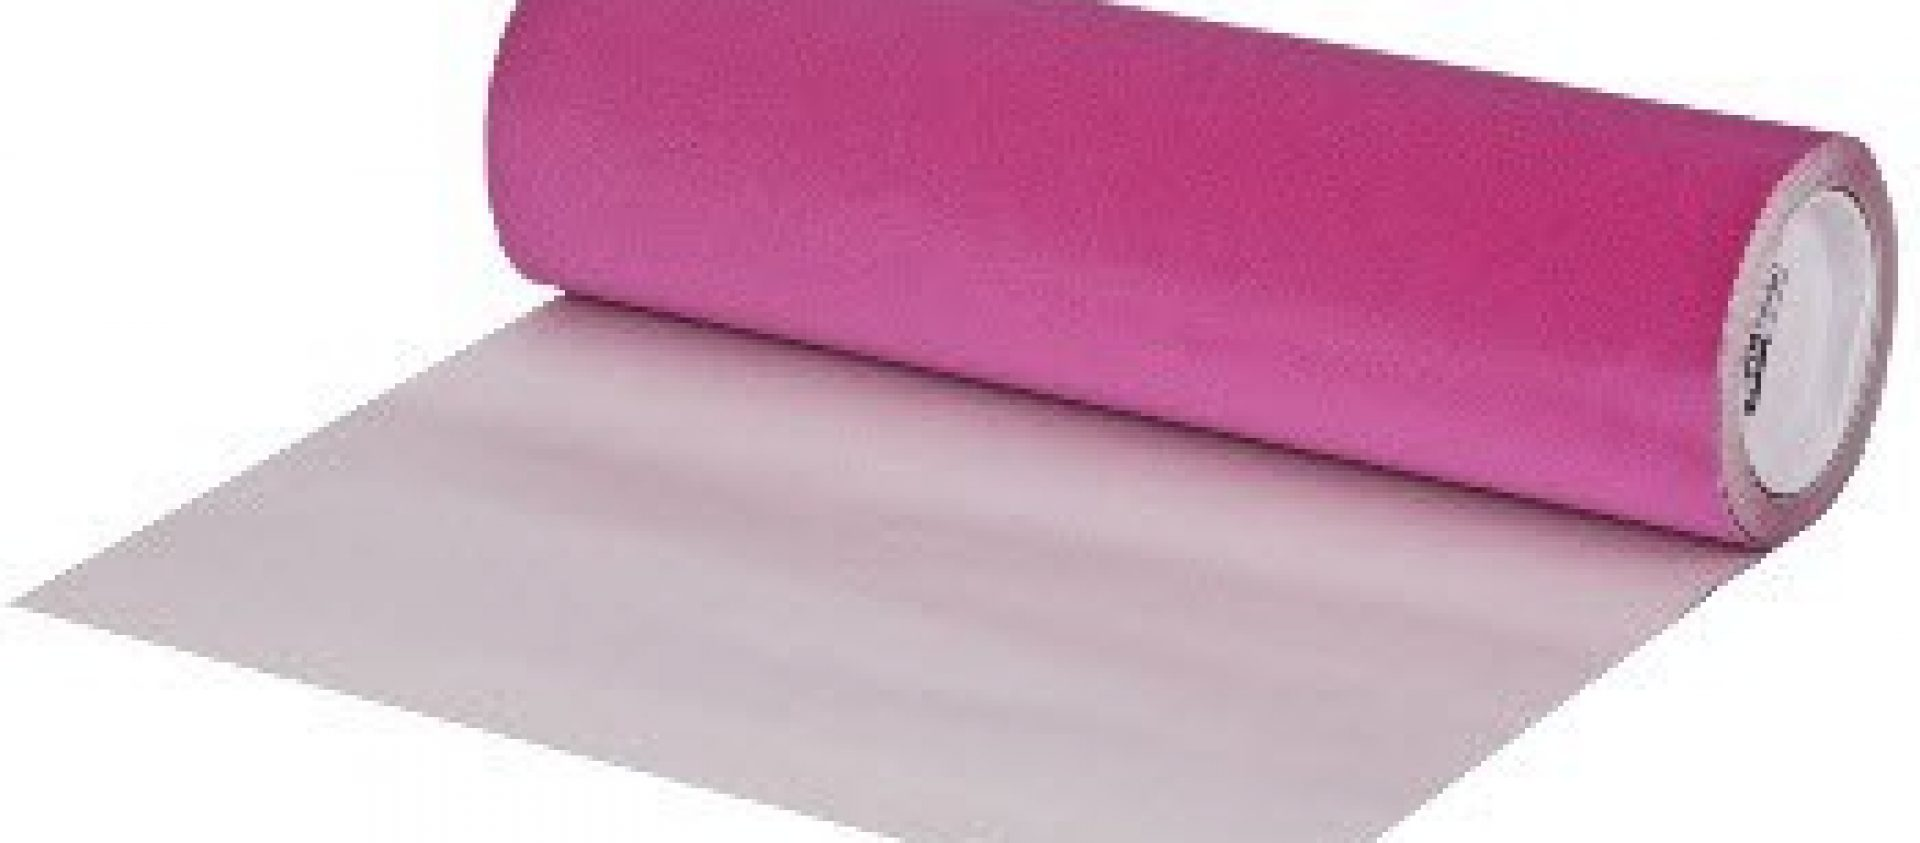 Sticky-Flock-Roll-Pink-350-wComment